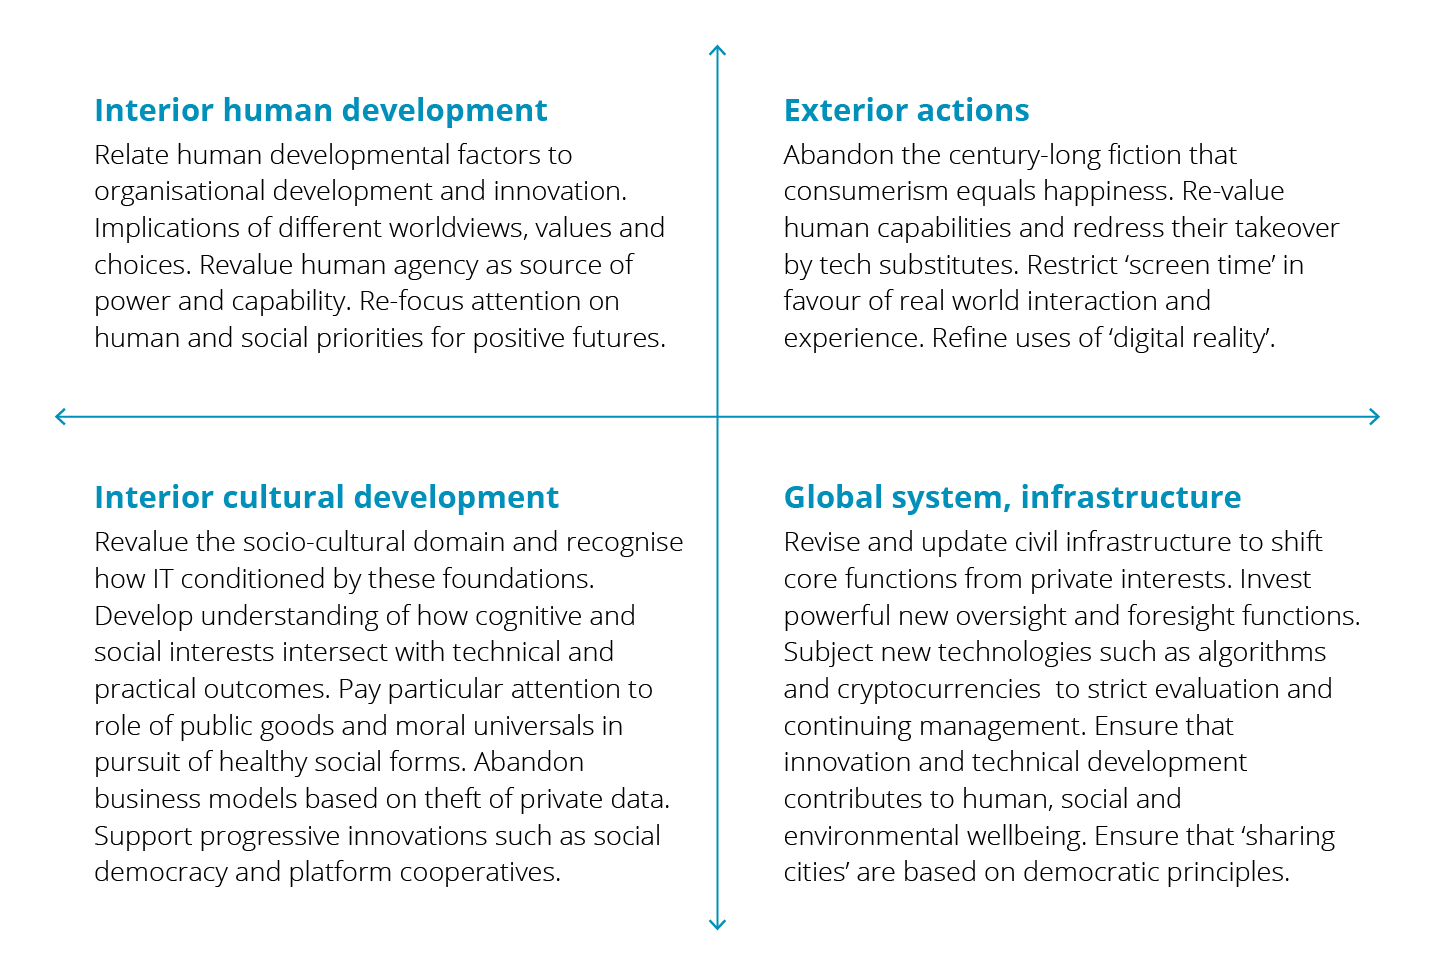 Quandrants split into four Interior human development Relate human developmental factors to organisational development and innovation. Implications of different worldviews, values and choices. Revalue human agency as source of power and capability. Re-focus attention on human and social priorities for positive futures; Exterior actions Abandon the century-long fiction that consumerism equals happiness. Re-value human capabilities and redress their takeover by tech substitutes. Restrict 'screen time' in favour of real world interaction and experience. Refine uses of 'digital reality';Interior cultural development Revalue the socio-cultural domain and recognise how IT conditioned by these foundations. Develop understanding of how cognitive and social interests intersect with technical and practical outcomes. Pay particular attention to role of public goods and moral universals in pursuit of healthy social forms. Abandon business models based on theft of private data. Support progressive innovations such as social democracy and platform cooperatives Global system, infrastructure Revise and update civil infrastructure to shift core functions from private interests. Invest powerful new oversight and foresight functions. Subject new technologies such as algorithms and cryptocurrencies to strict evaluation and continuing management. Ensure that innovation and technical development contributes to human, social and environmental wellbeing. Ensure that 'sharing cities' are based on democratic principles.